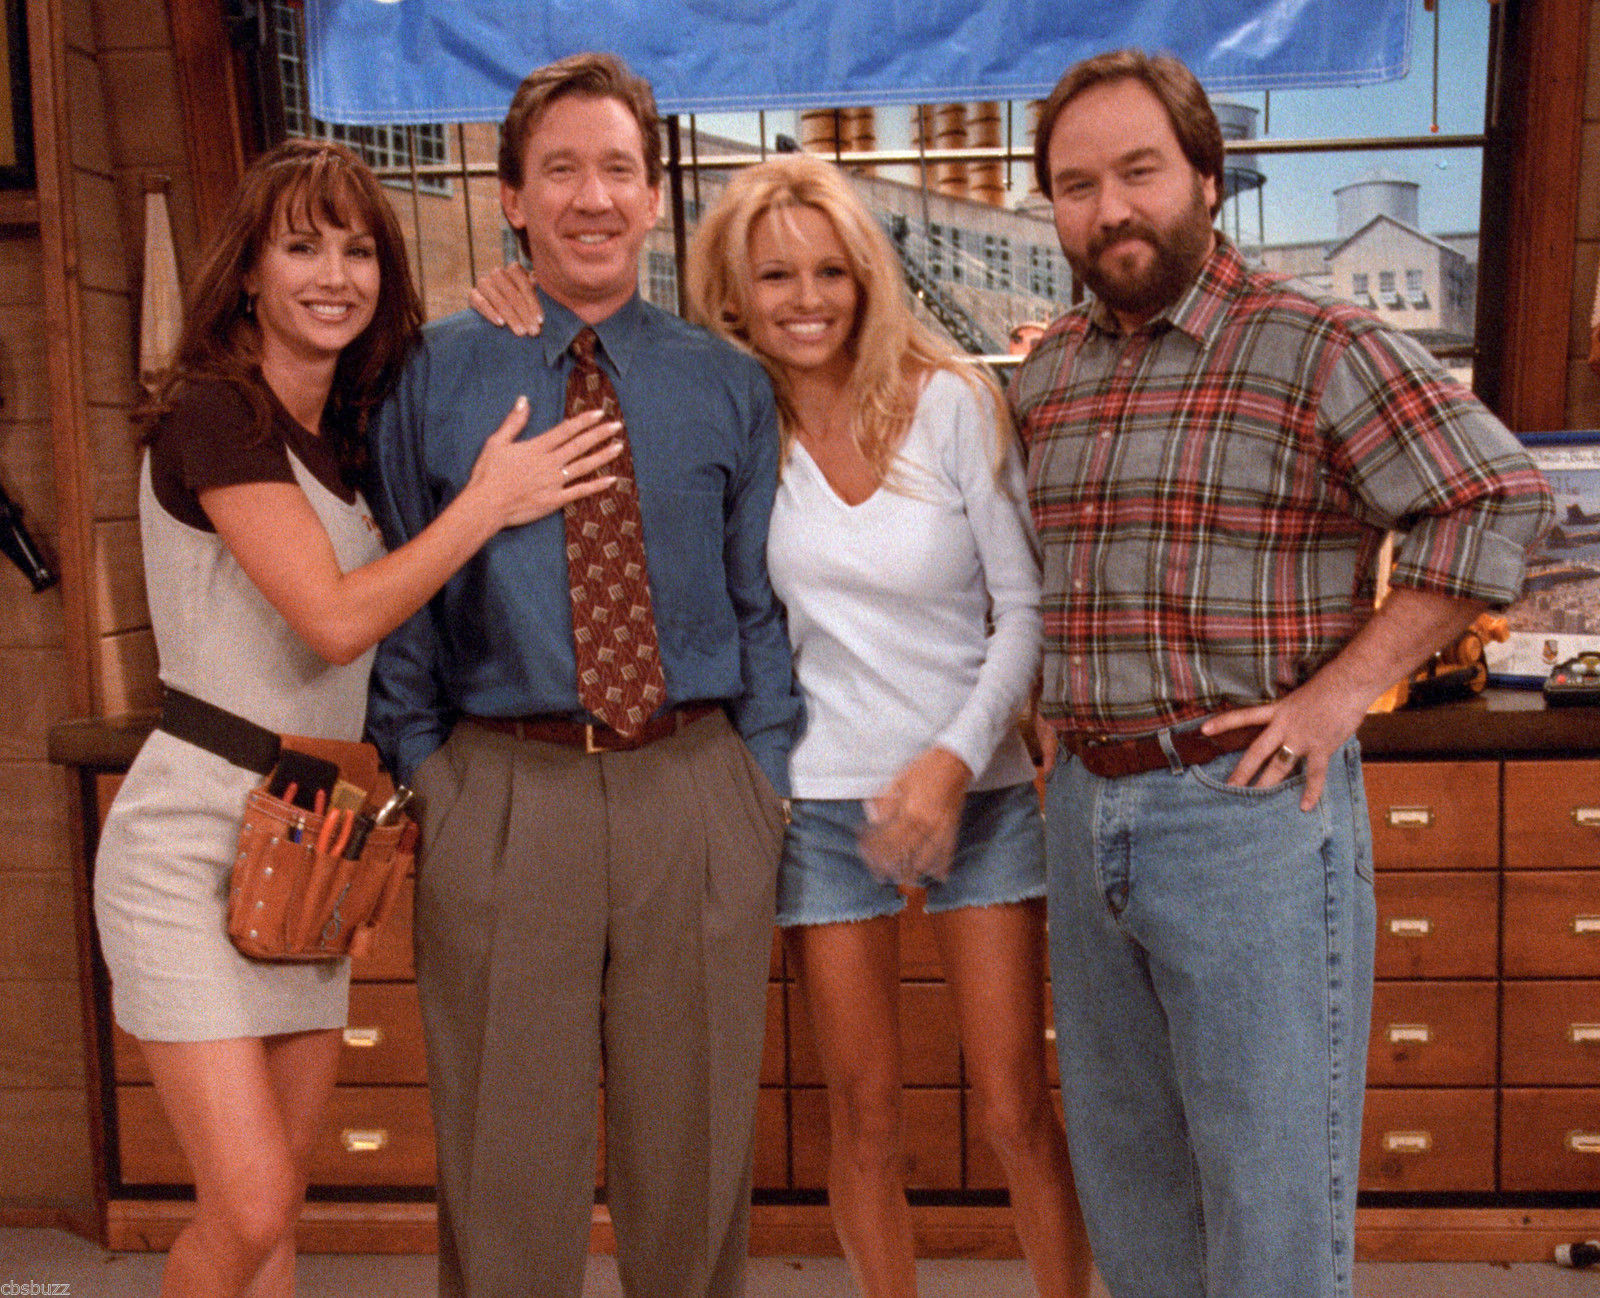 Image heidi tim lisa and al jpg home improvement for Home improvement tv wiki